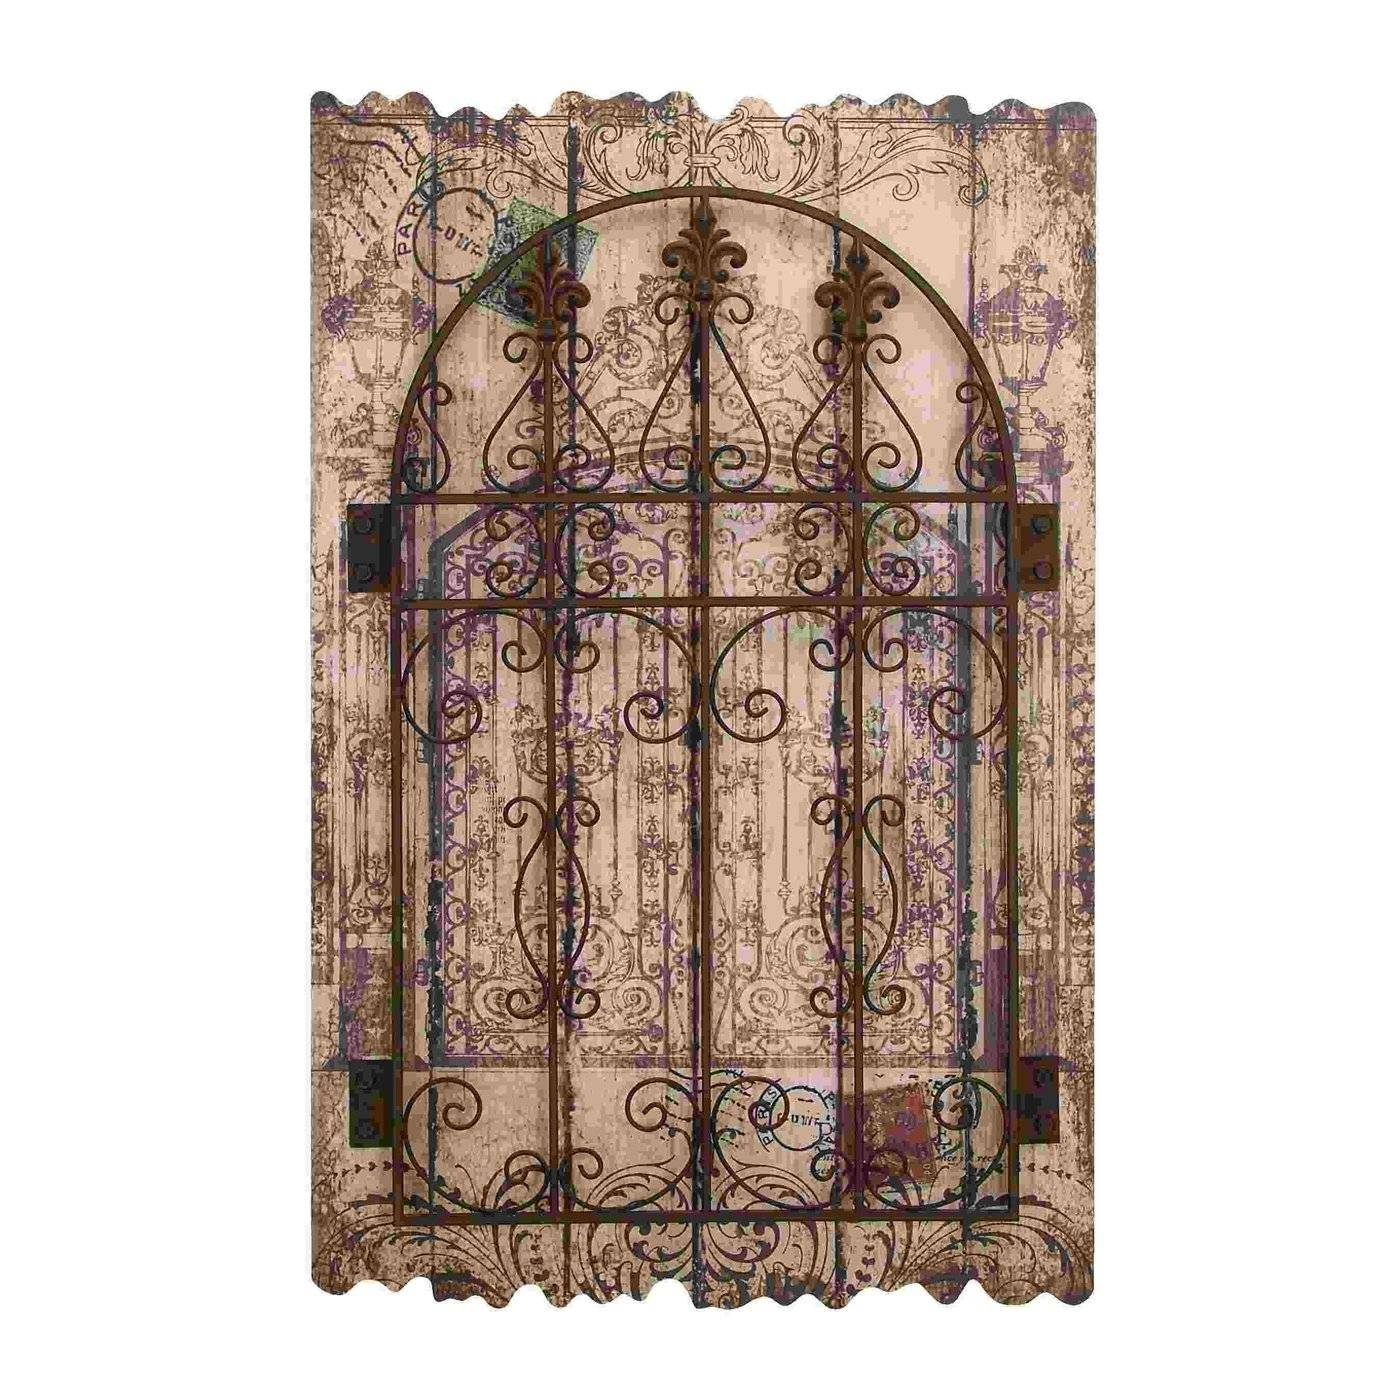 Wall Art Designs: Metal And Wood Wall Art Tuscan Carved Garden Pertaining To Most Up To Date Iron Gate Wall Art (View 3 of 25)